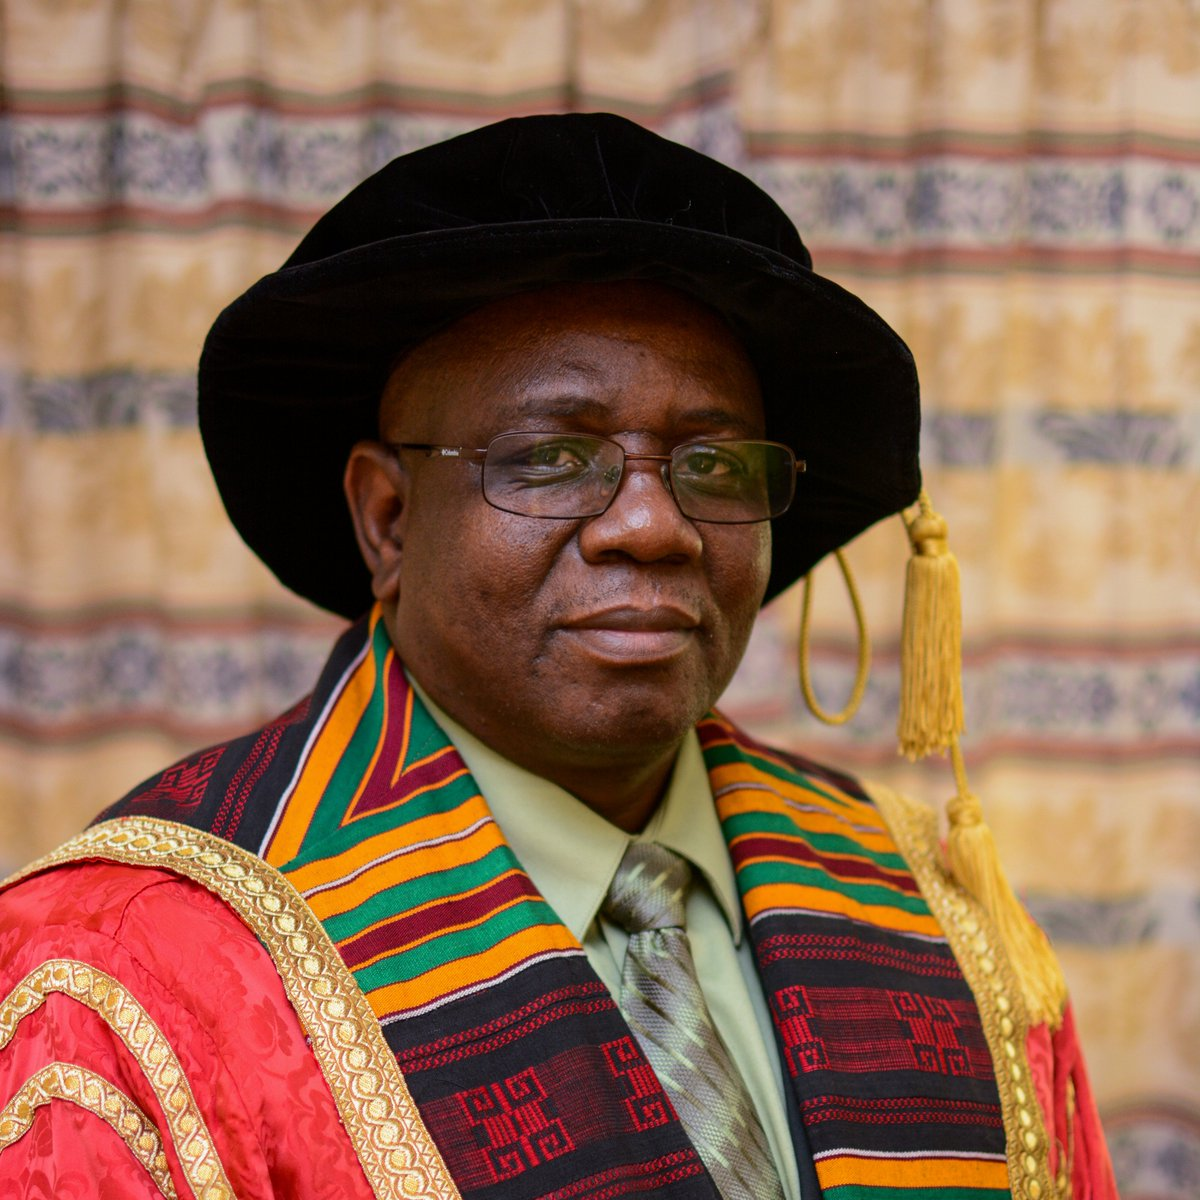 In the early hours of this morning, the 13th of January 2021, our beloved Vice Chancellor Prof. Munashe Furusa passed away. Let us mourn, grieve and remember our Vice Chancellor drawing strength from the greatness he inspired and the legacy he leaves behind. Rest in peace our VC.